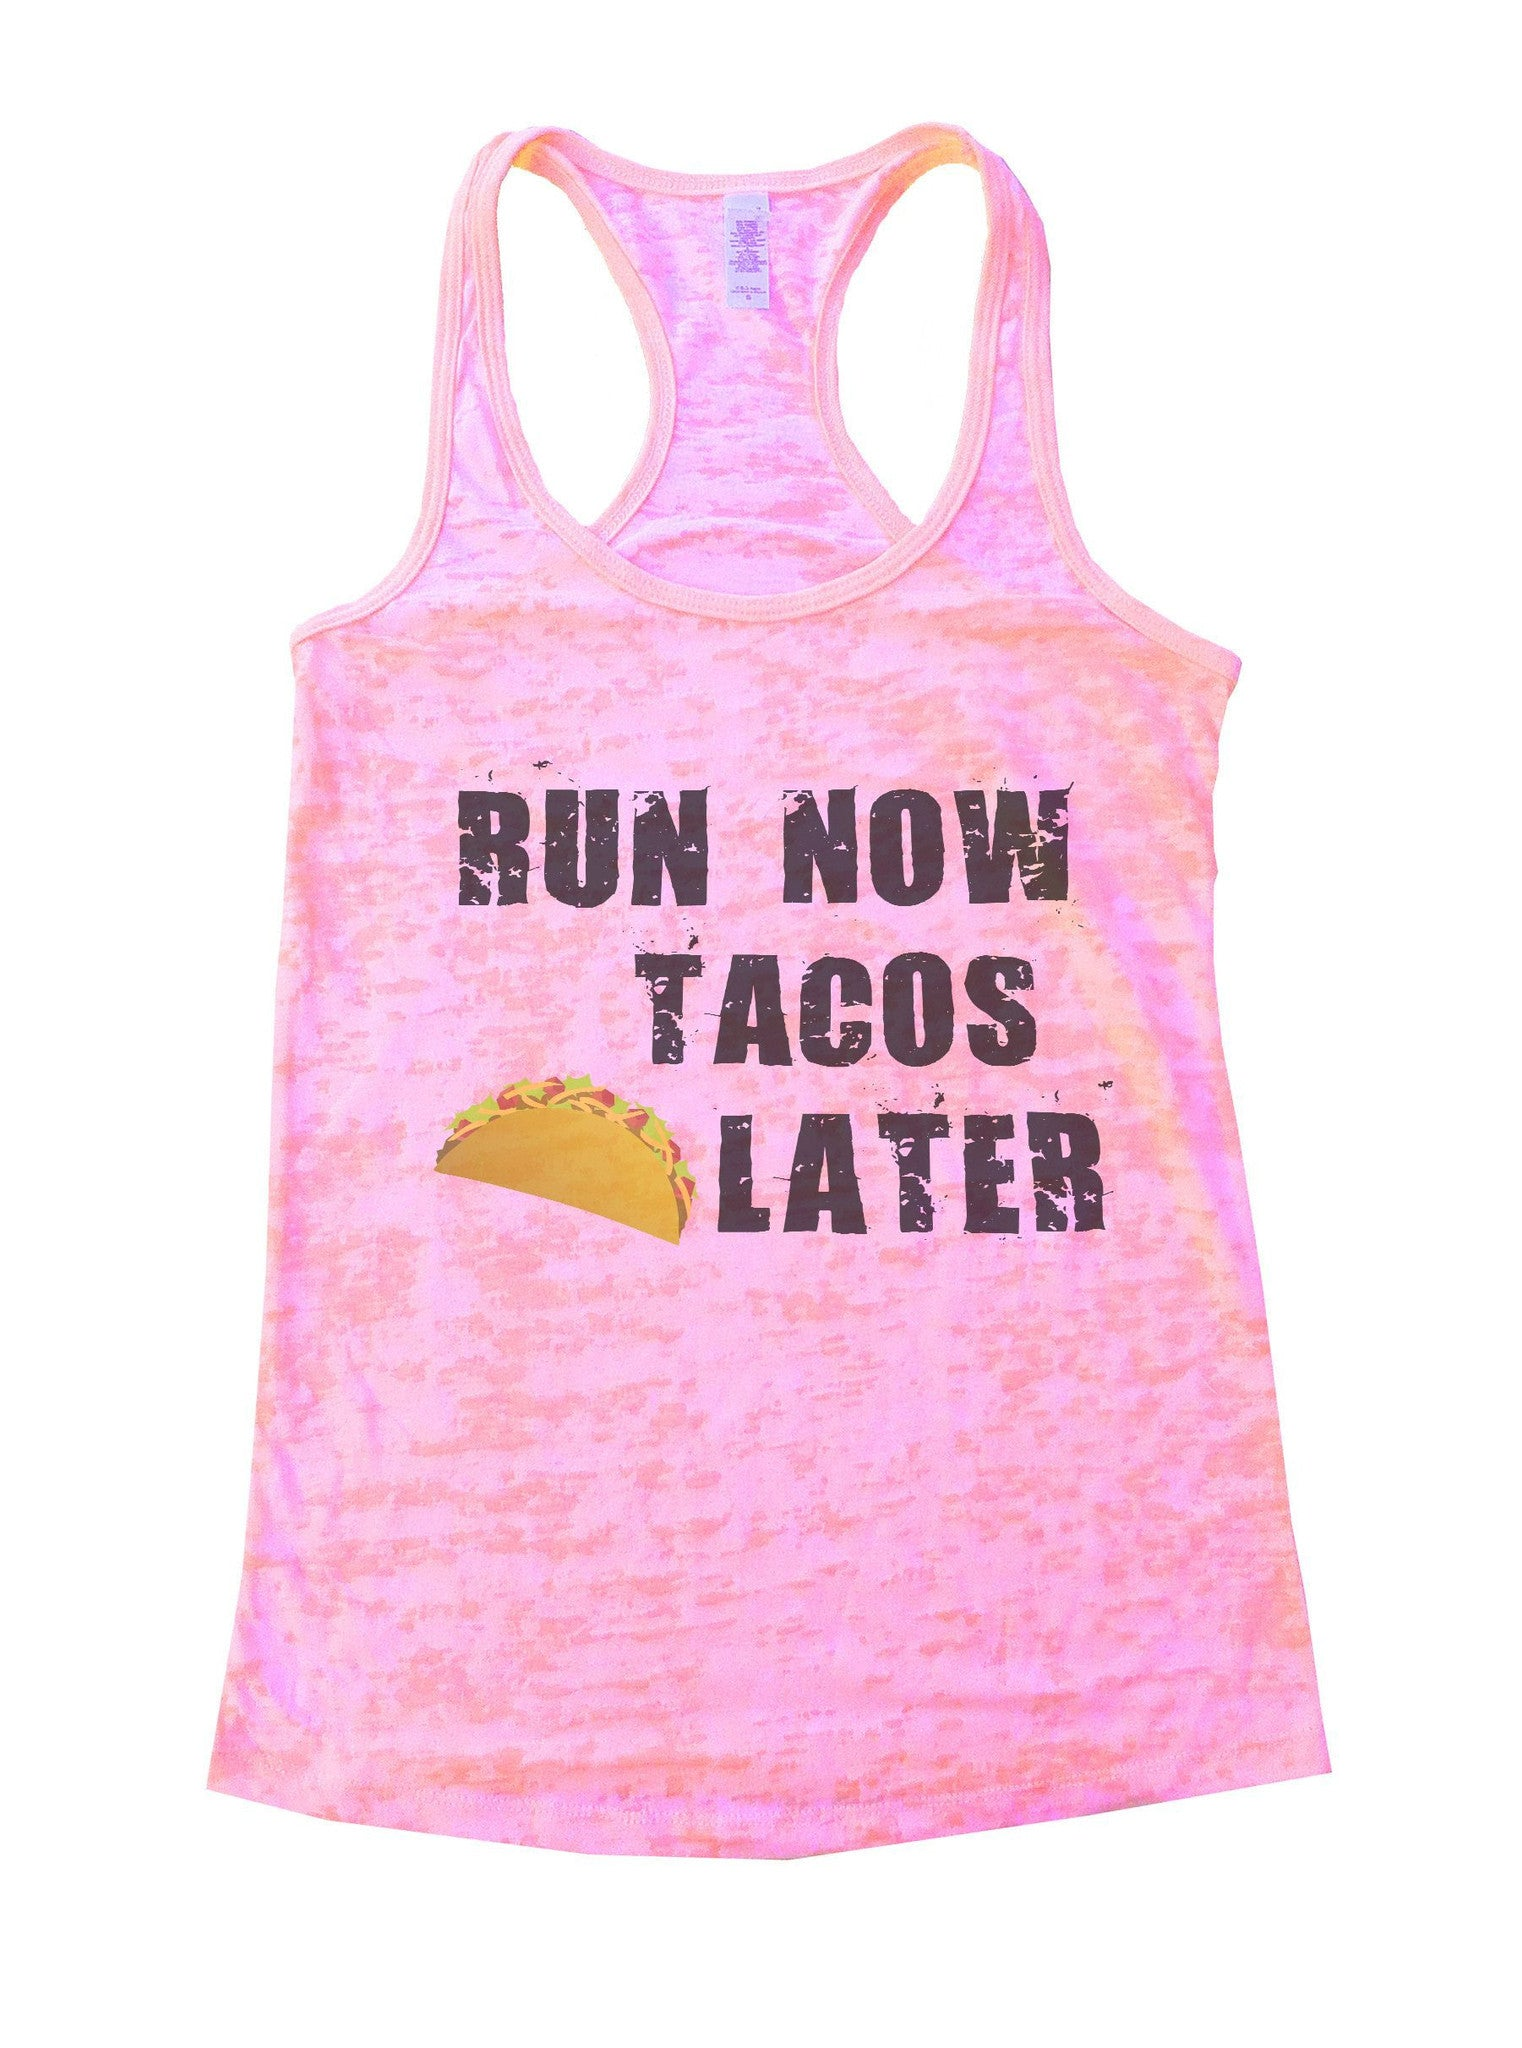 Run Now Tacos Later Burnout Tank Top By BurnoutTankTops.com - 650 - Funny Shirts Tank Tops Burnouts and Triblends  - 2